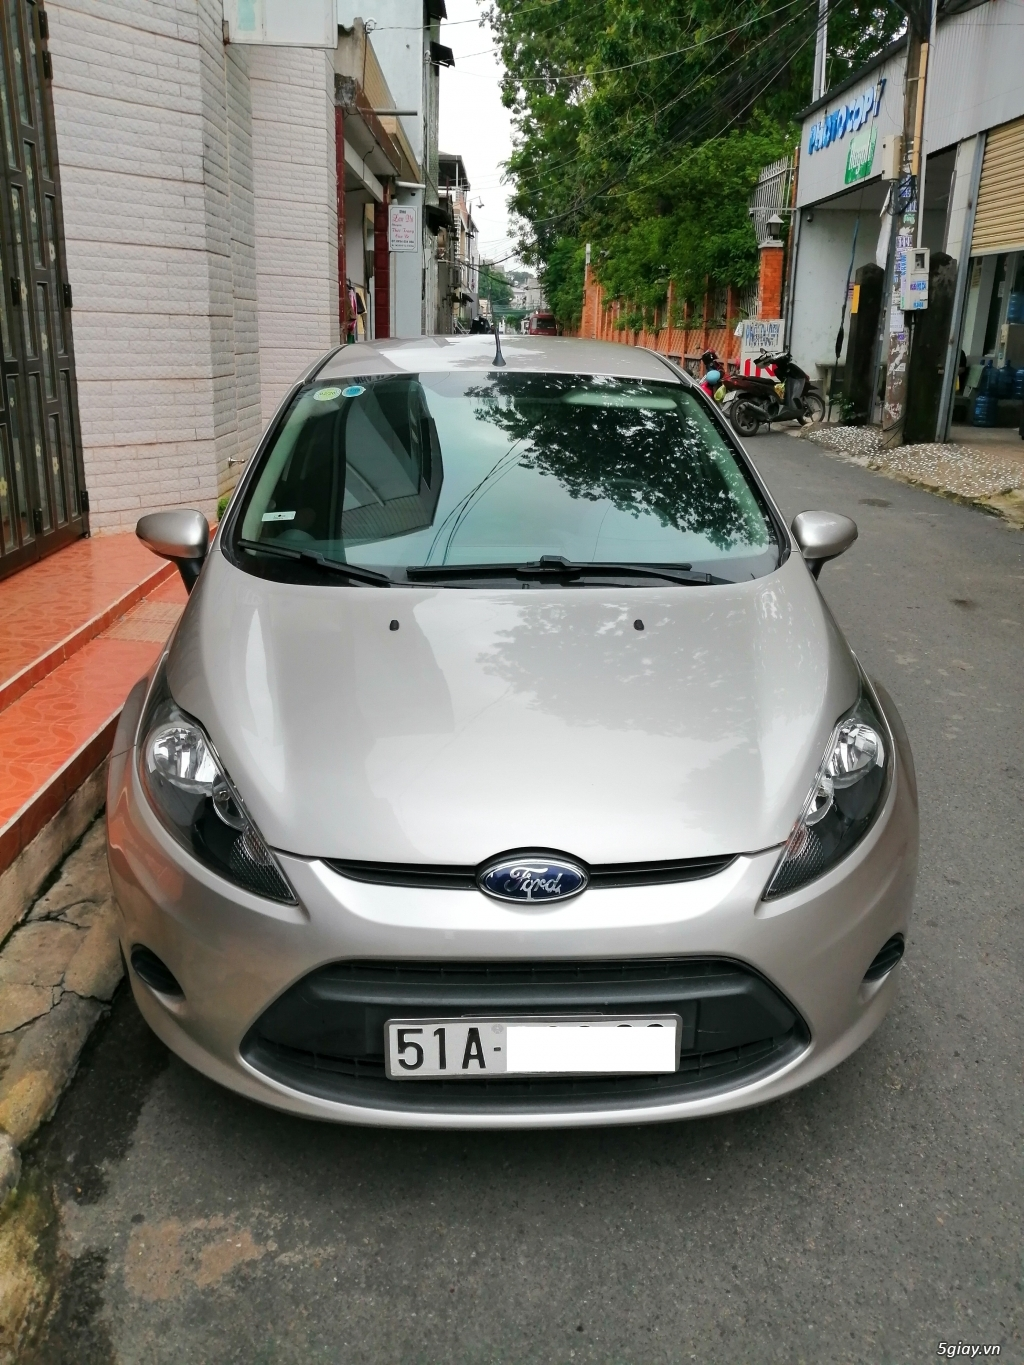 Xe	Ford Fiesta	1.6 AT	2013	-GHINA